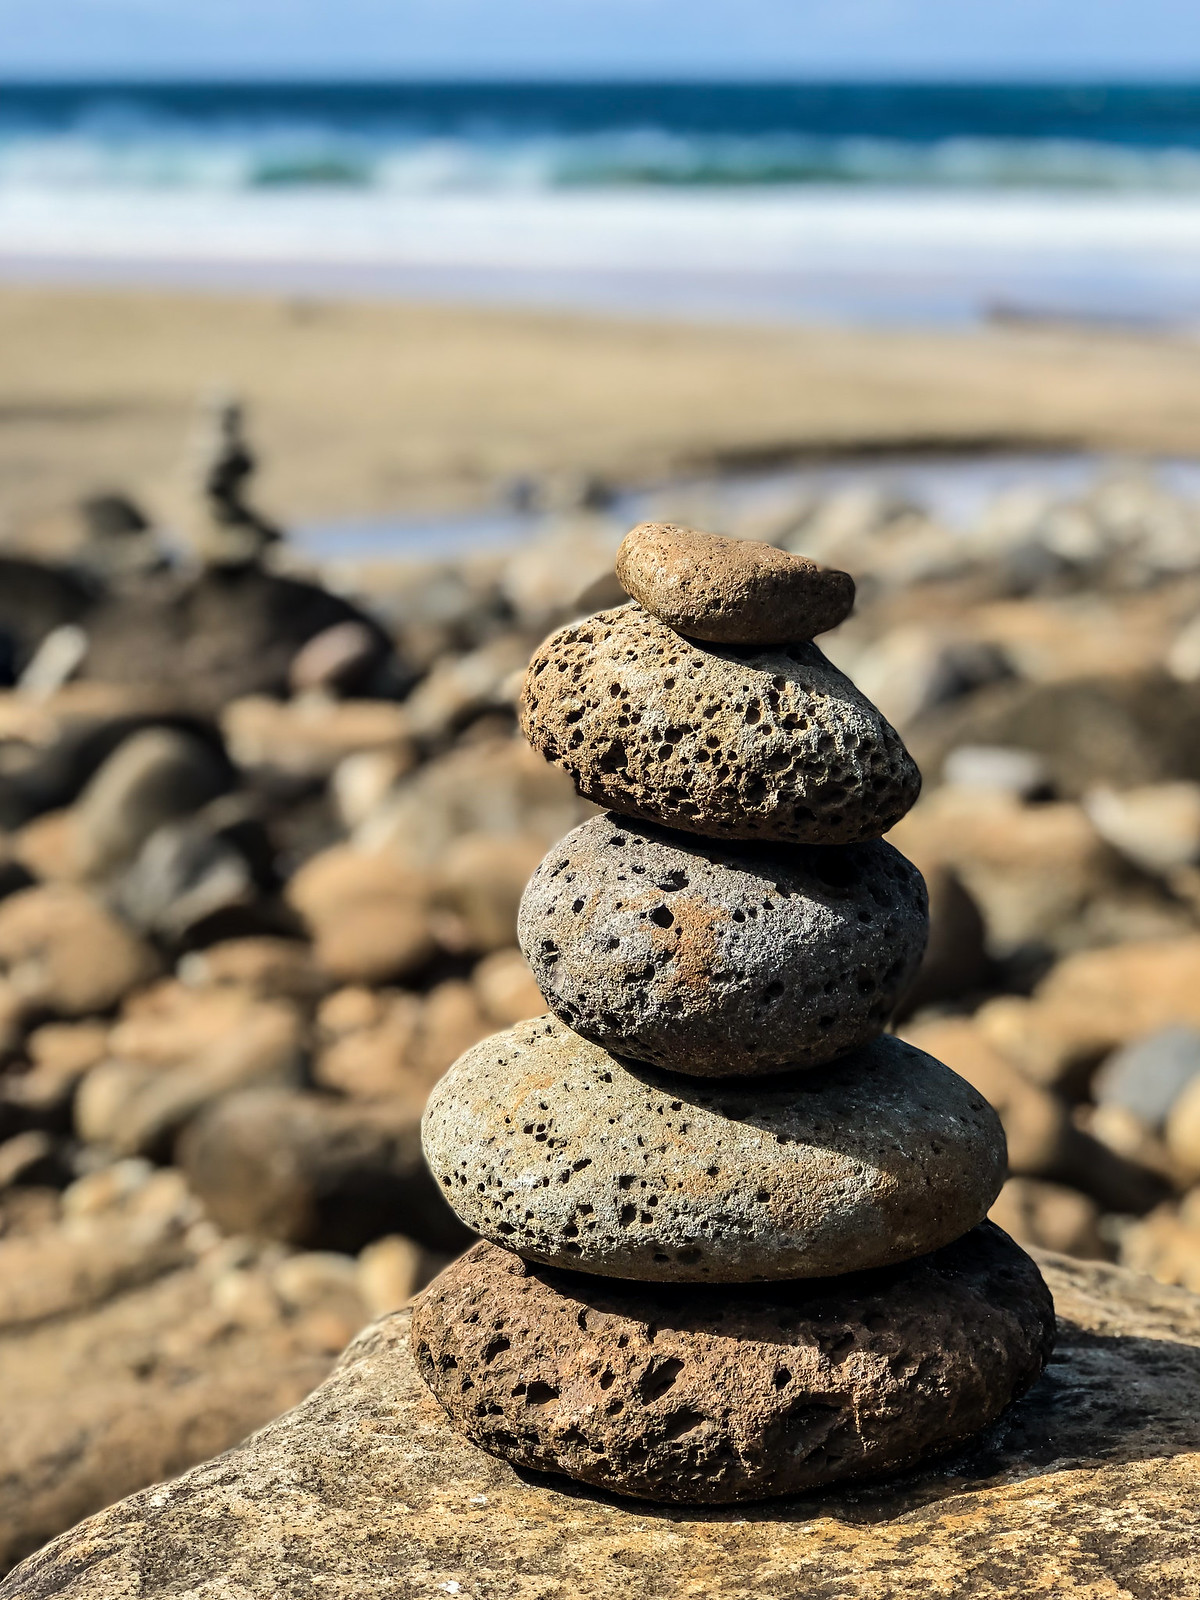 the beach at the end of the trail was covered with dozens of stone cairns